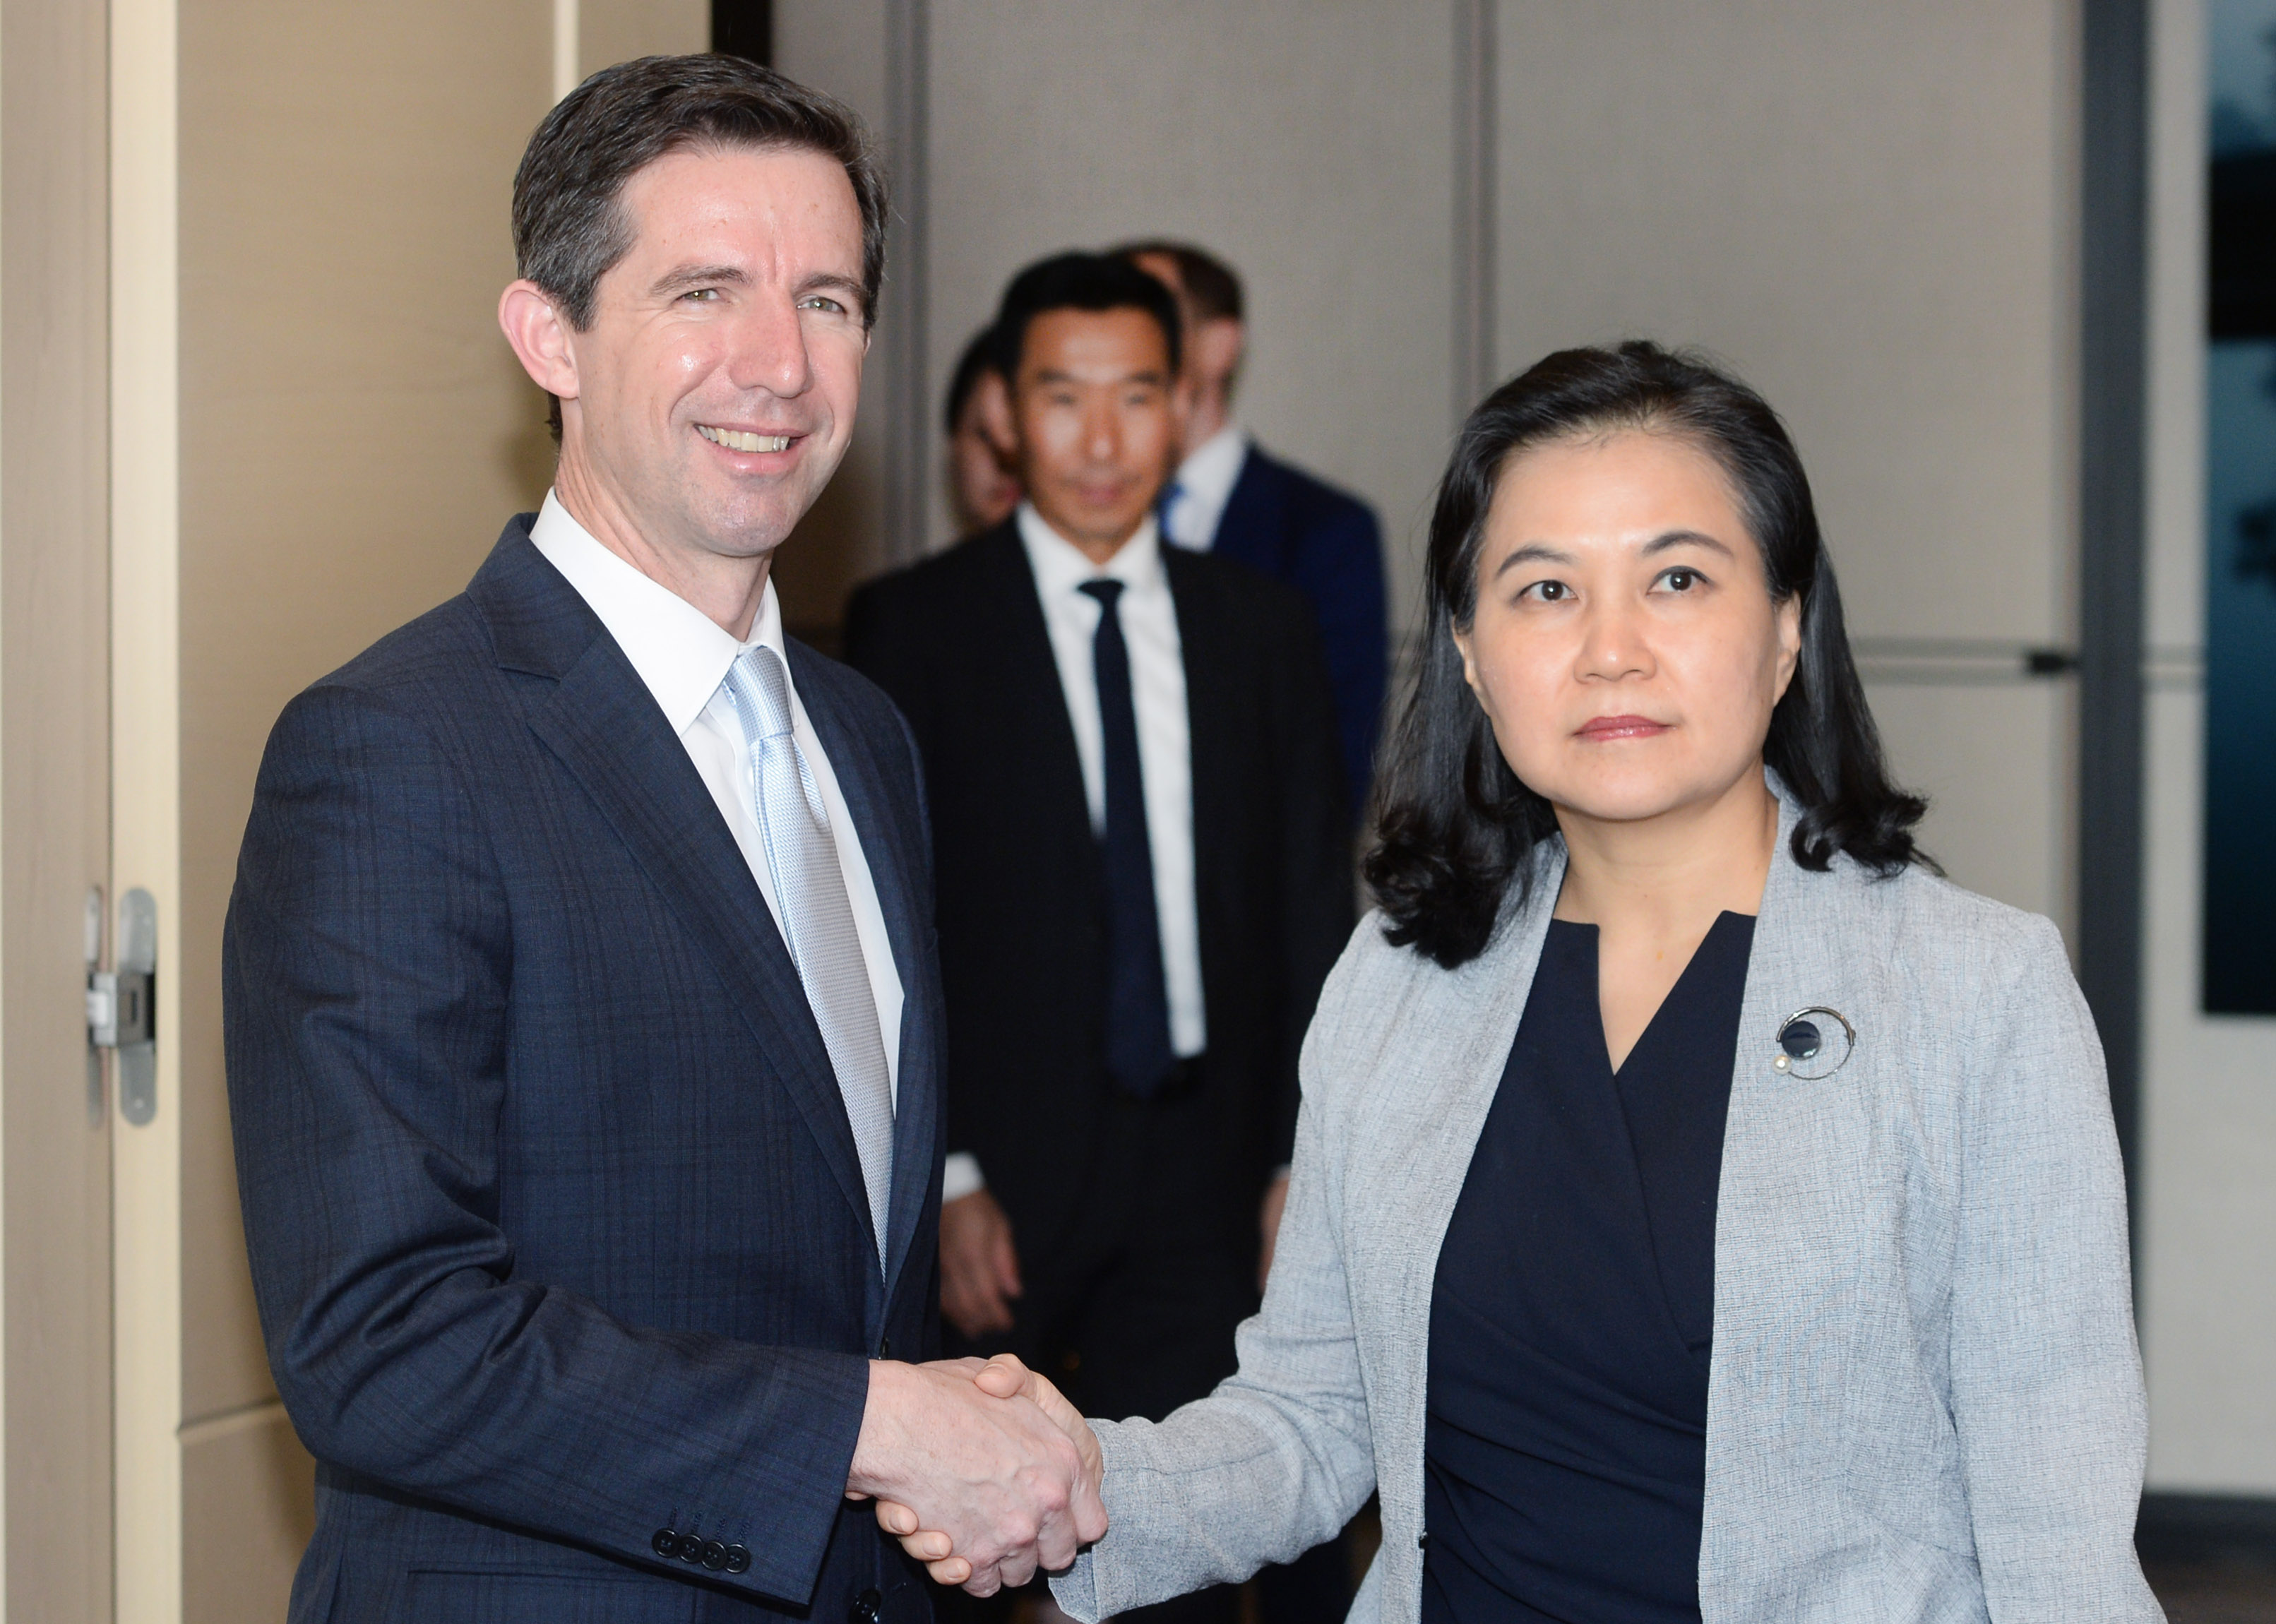 Trade Minister Yoo Meets with Australia's Trade Minister Image 0